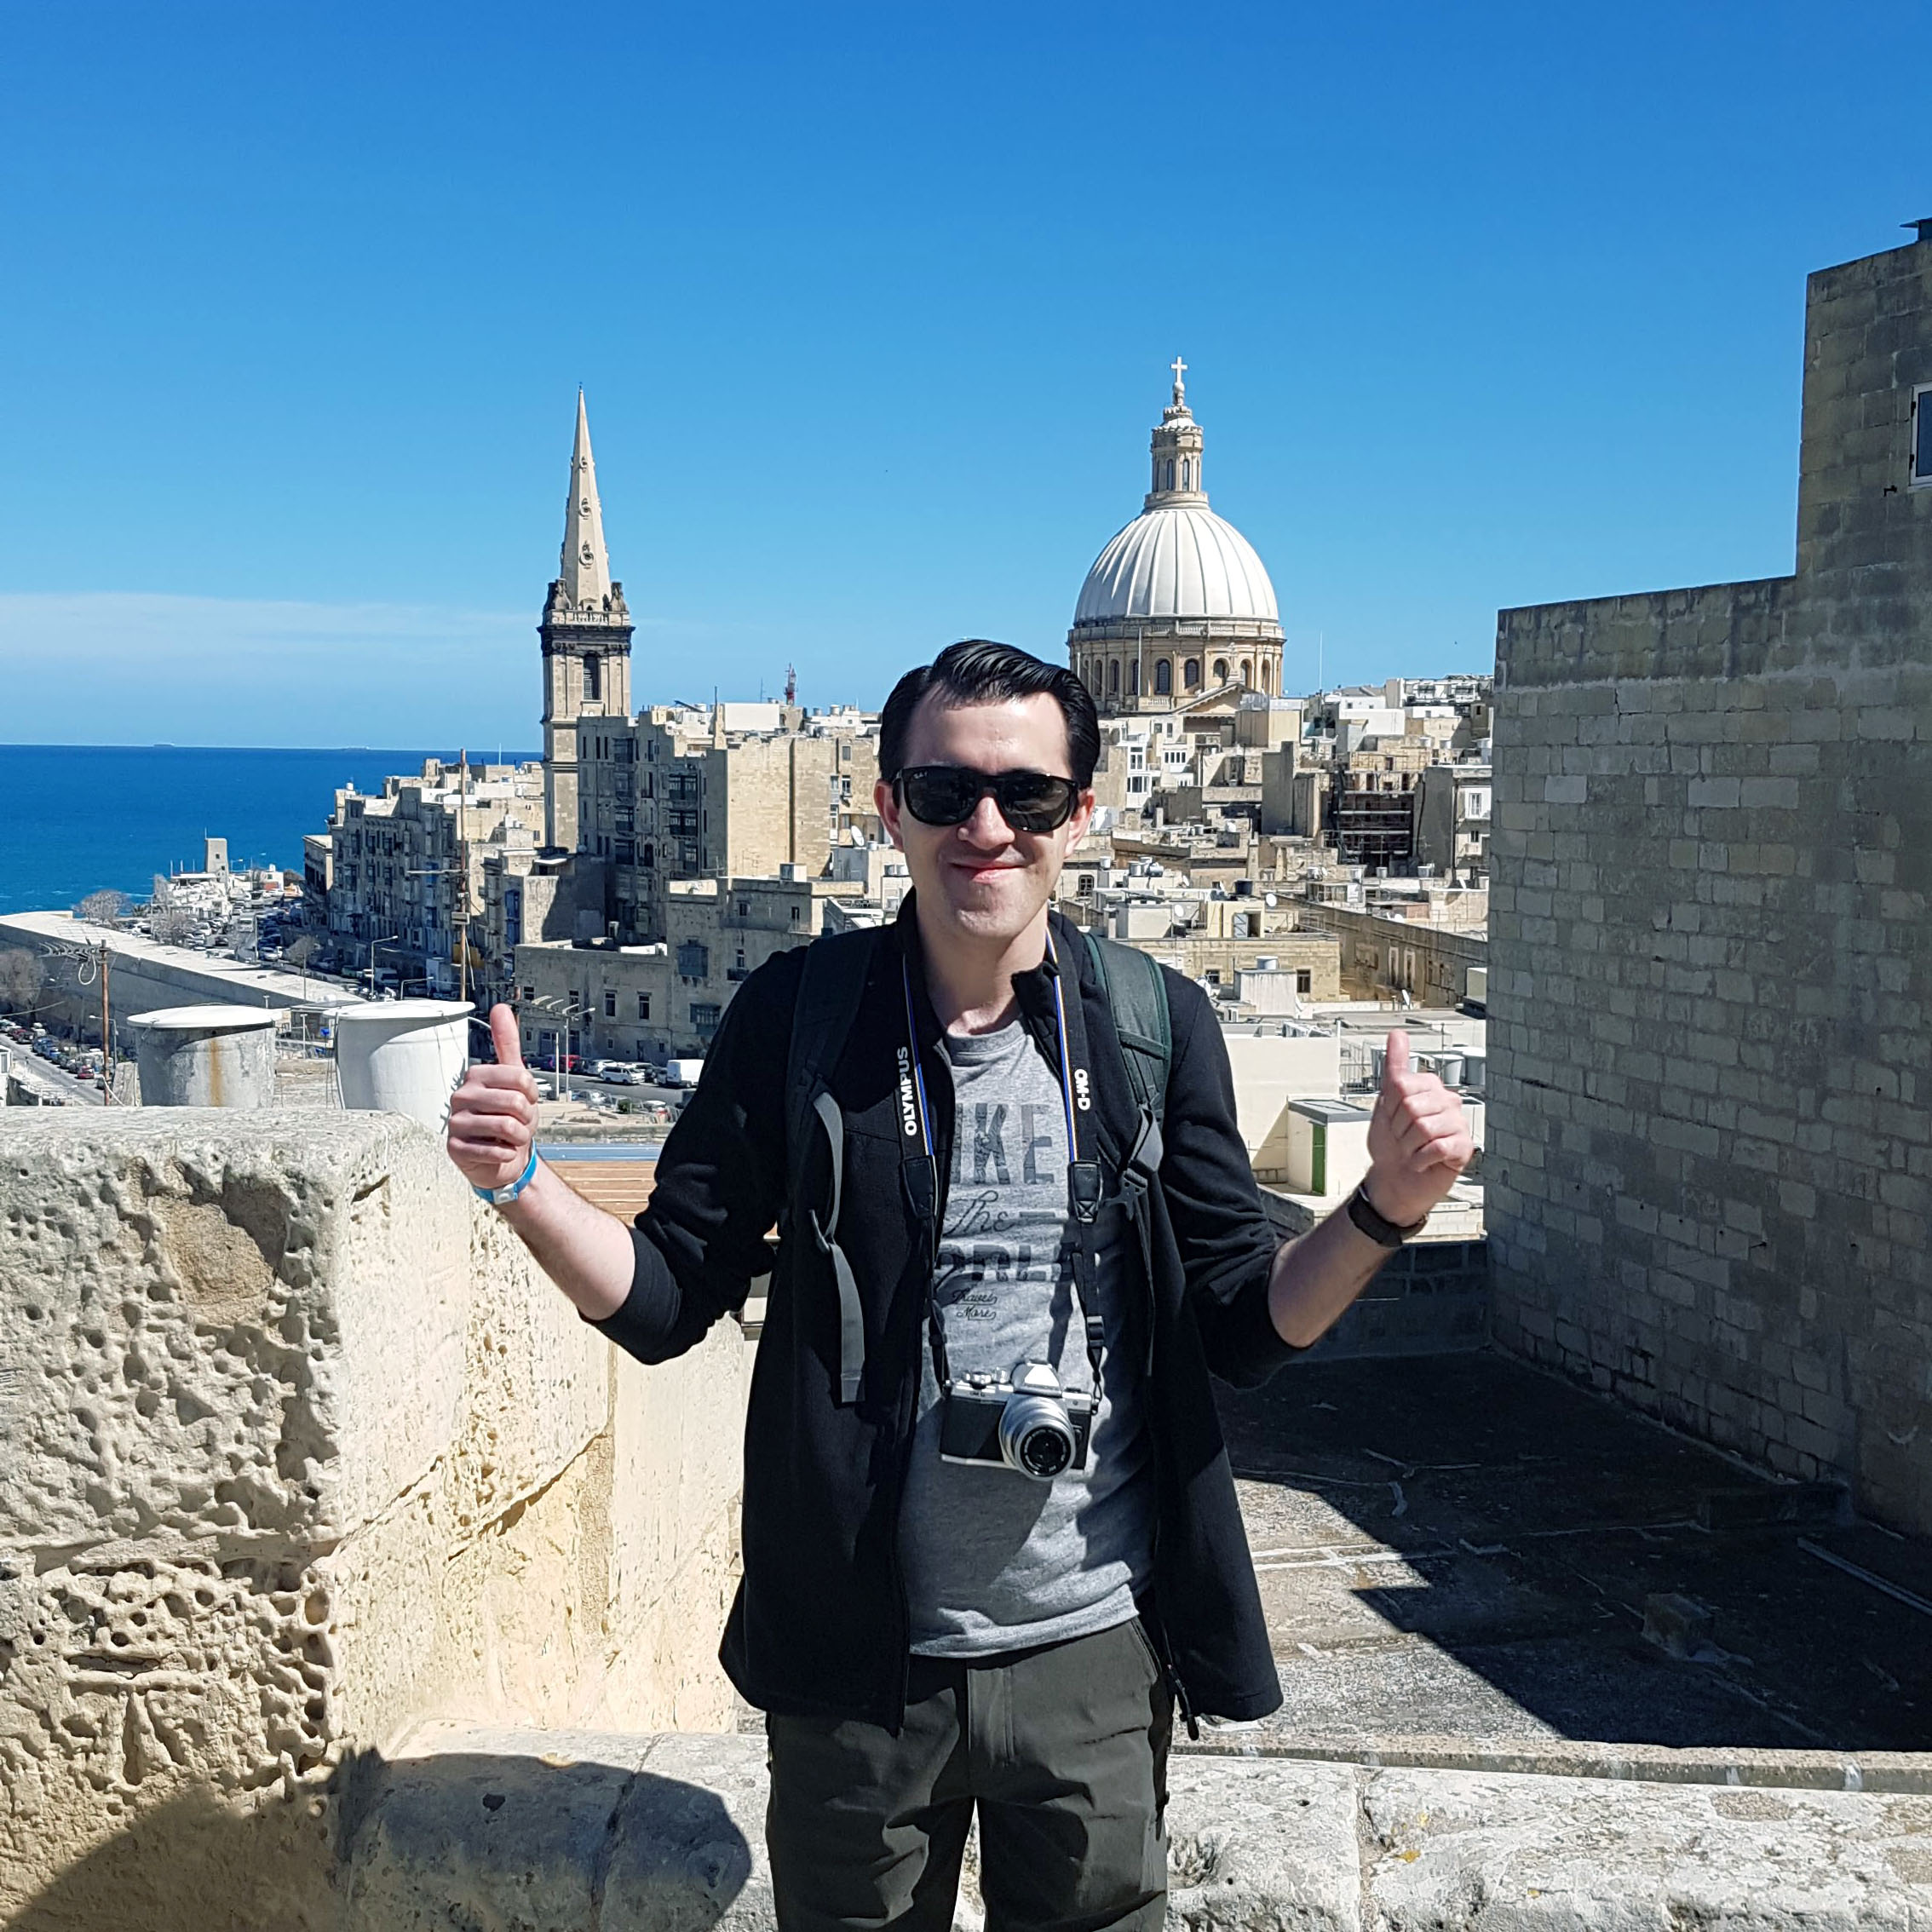 Solo photo in Valletta